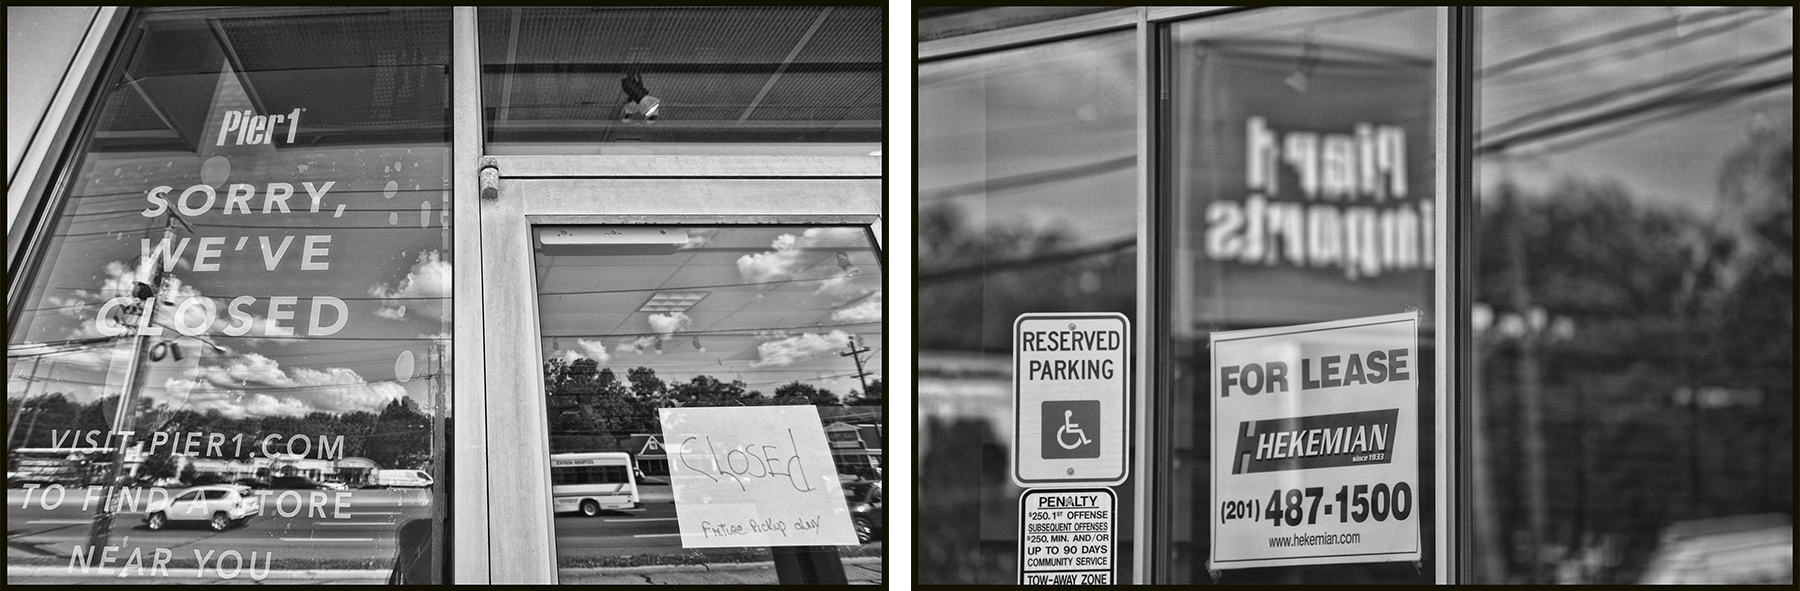 Pier 1's storefront features closed and for lease signs.